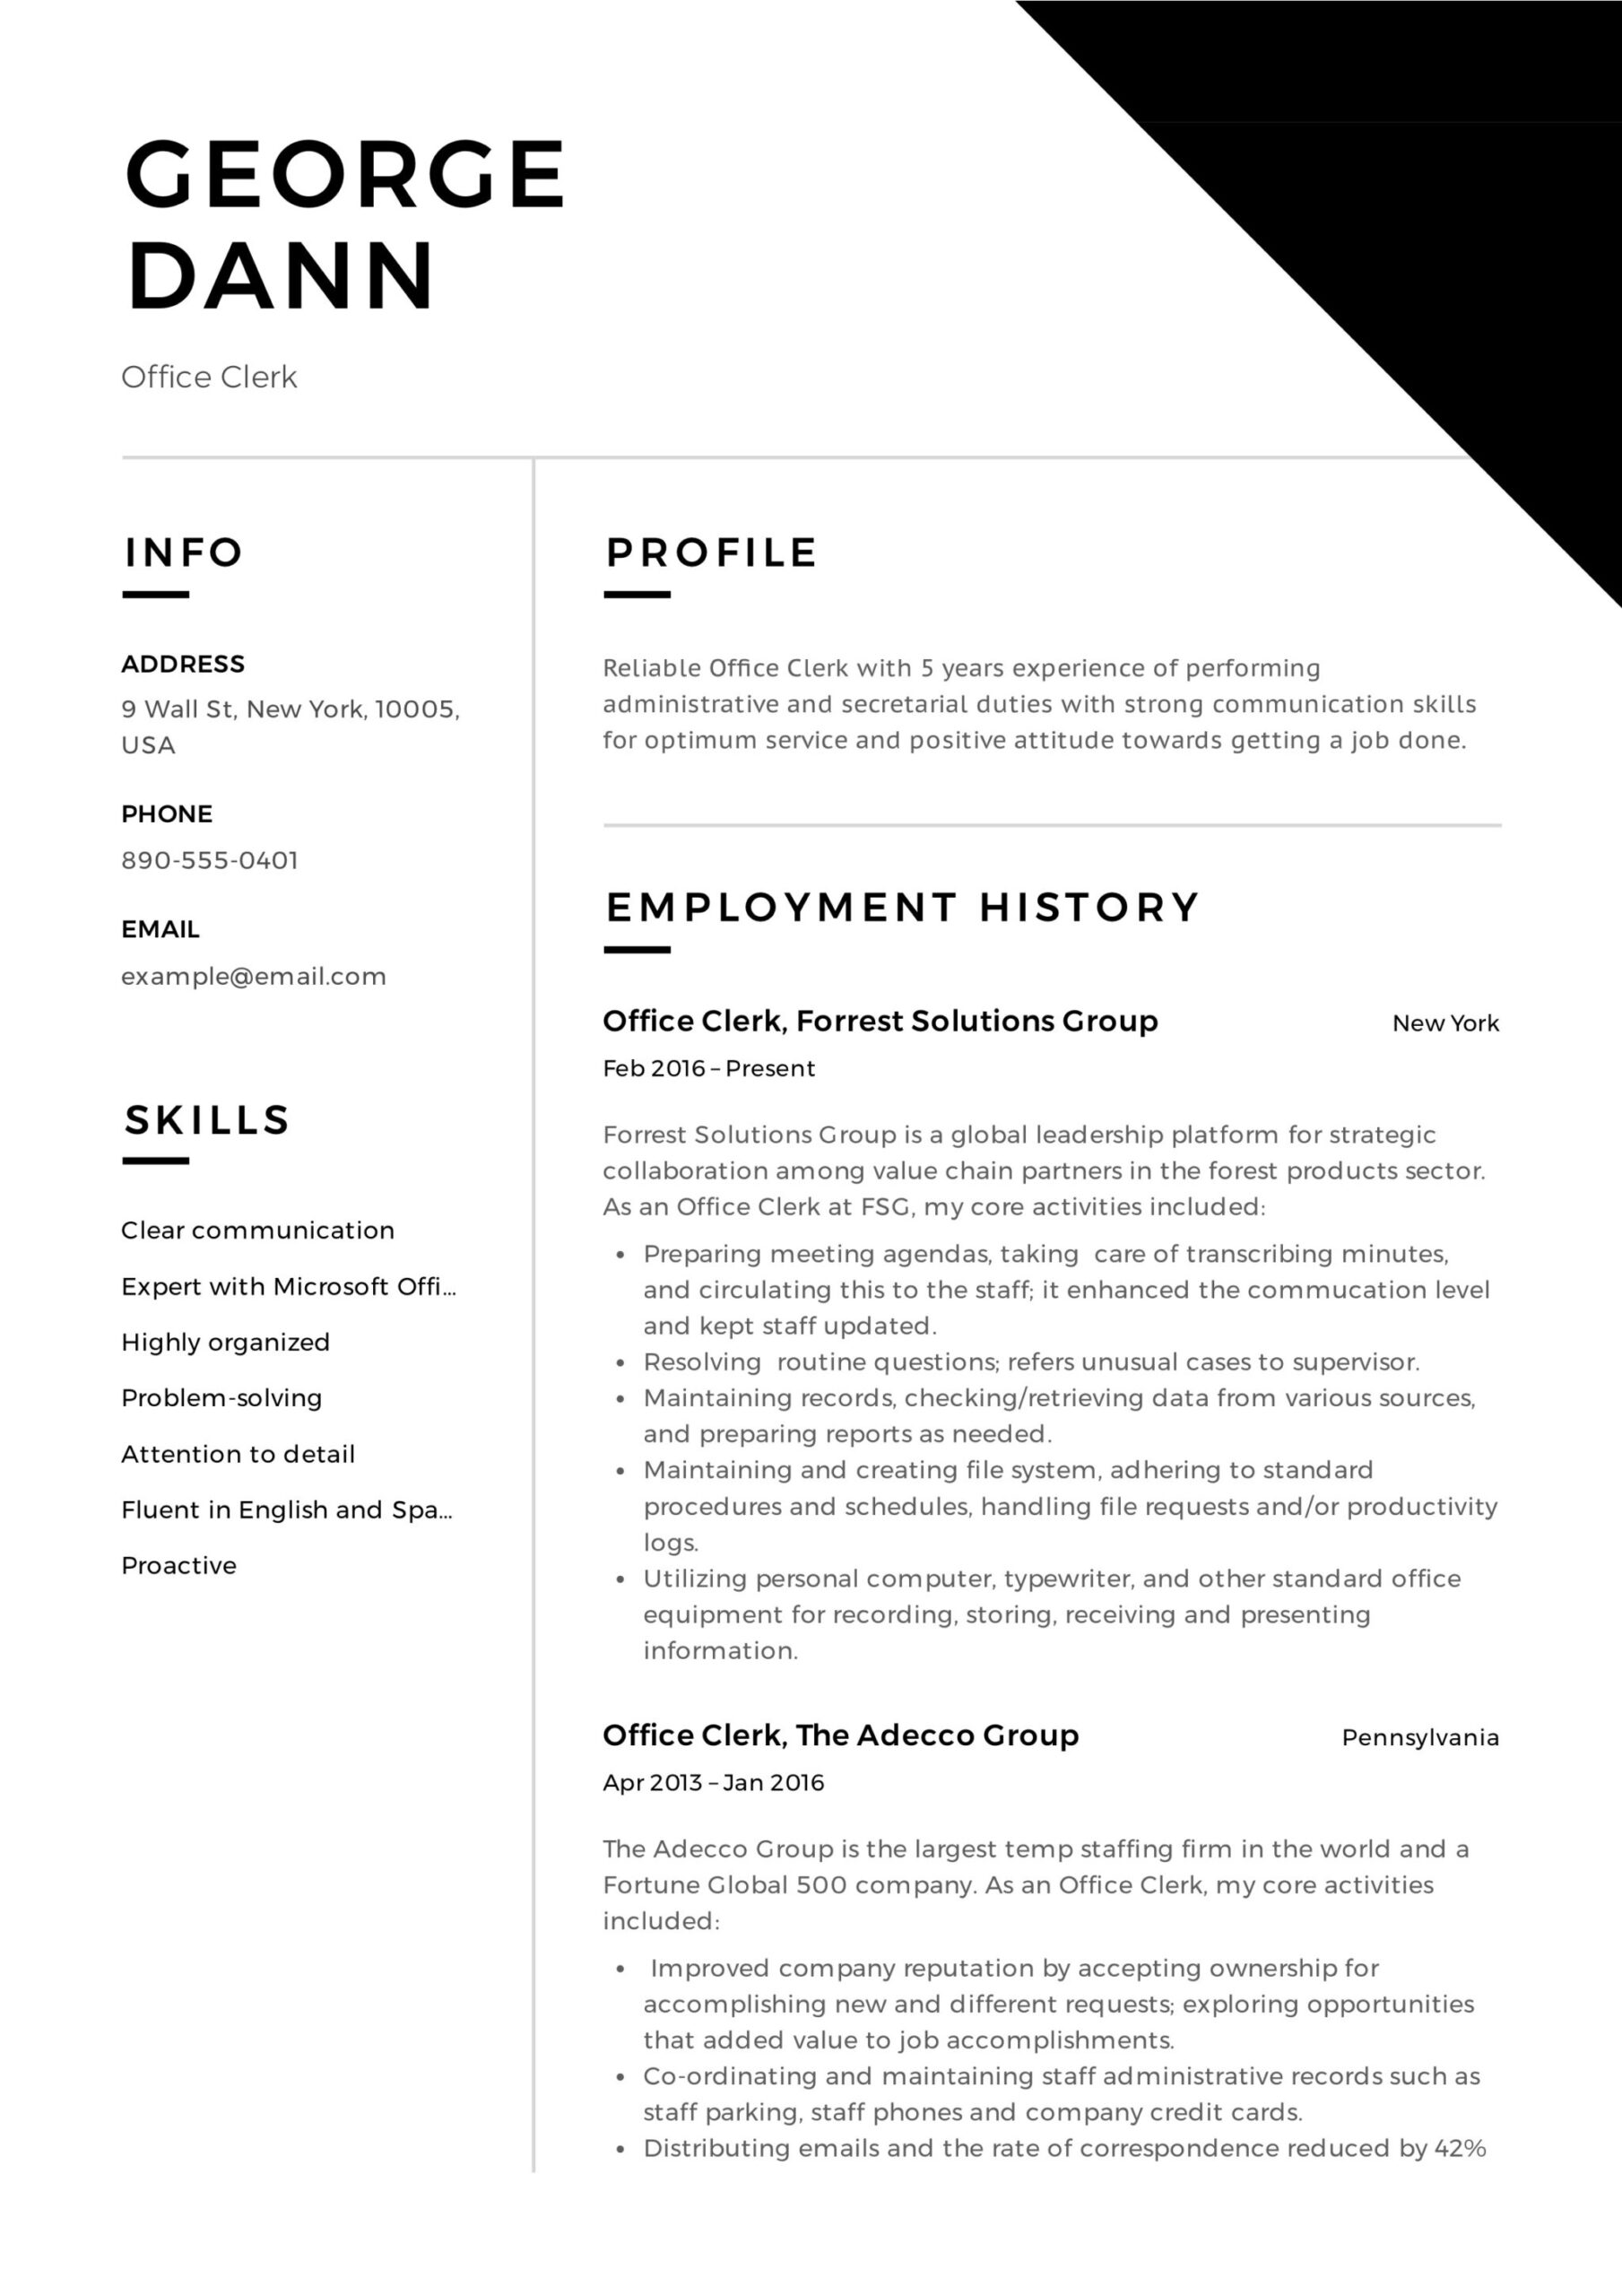 office clerk resume guide samples pdf clerical summary boeing format stb testing catering Resume Clerical Resume Summary